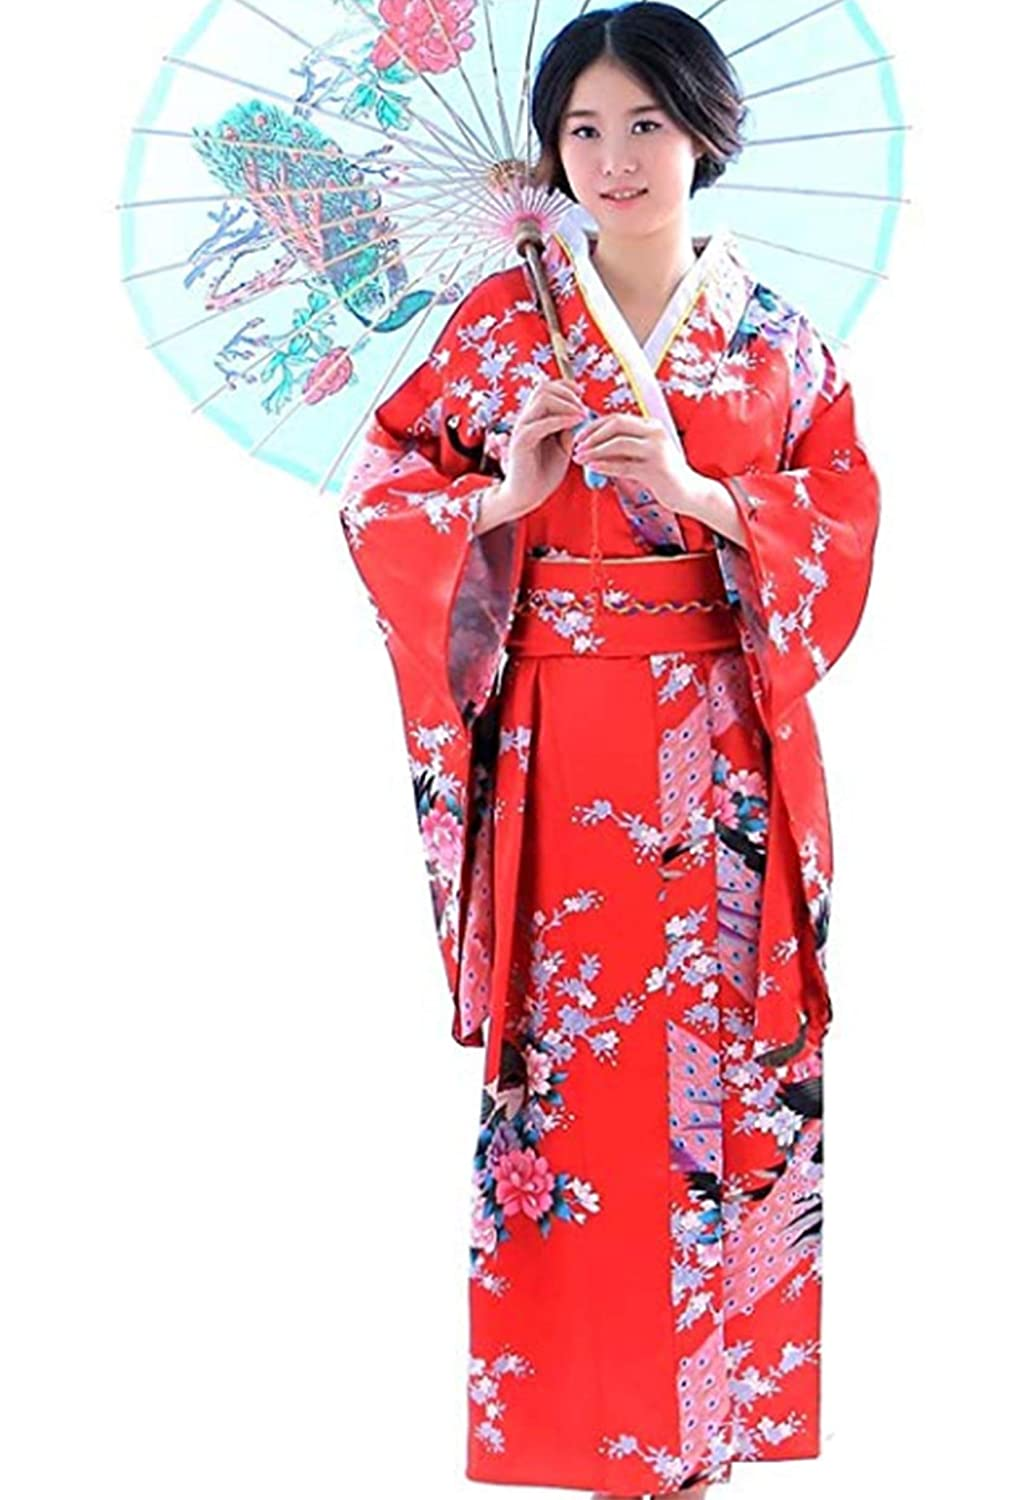 Botanmu Women's Kimono Robe Japanese Dress Photography Cosplay Costume 5 Colors